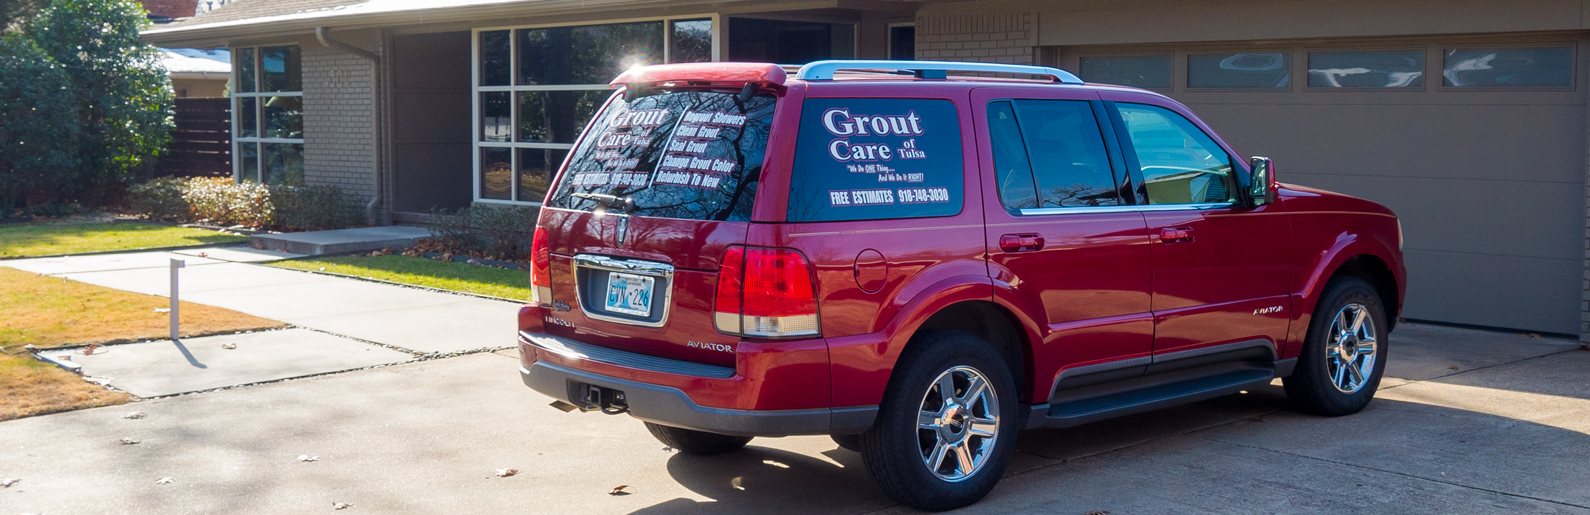 Grout Care Of Tulsa Service Vehicle